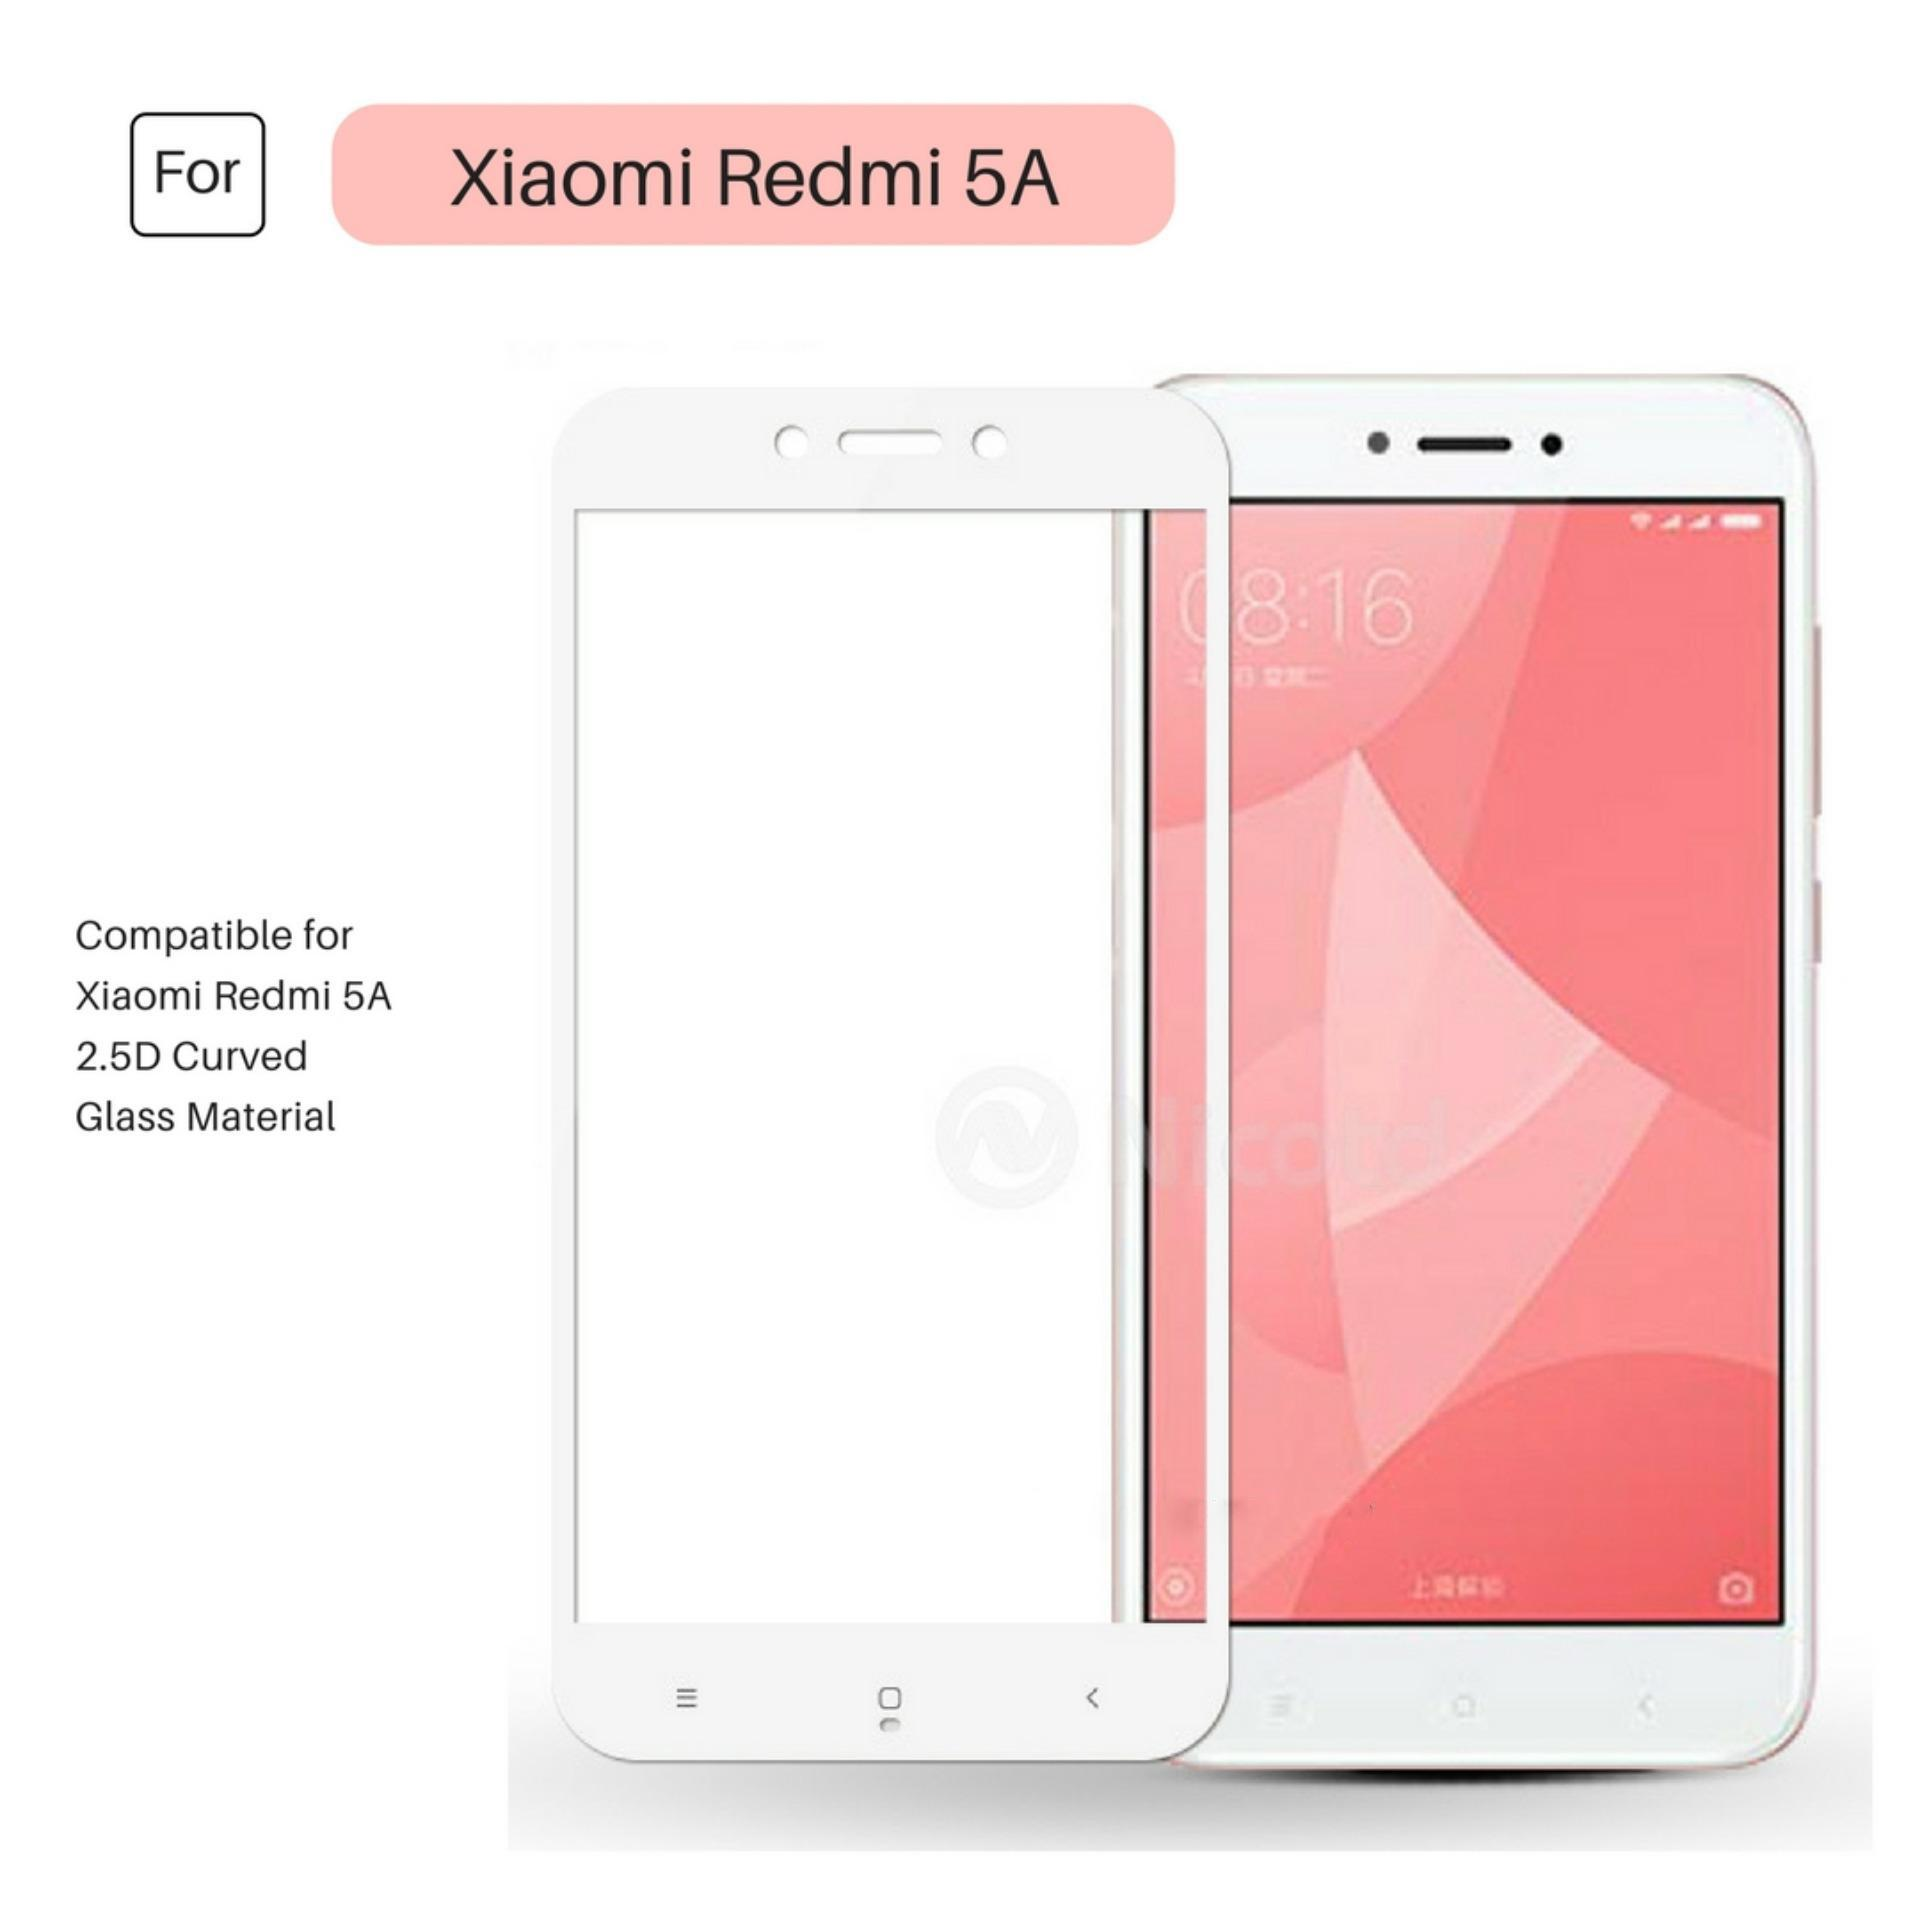 Kelebihan Jak Shop Kaca Tempered Glass Screen Protector For Xiaomi New Itemtempered Fullwarna Redmi Note 4x Gold Warna Full Corning 5a White